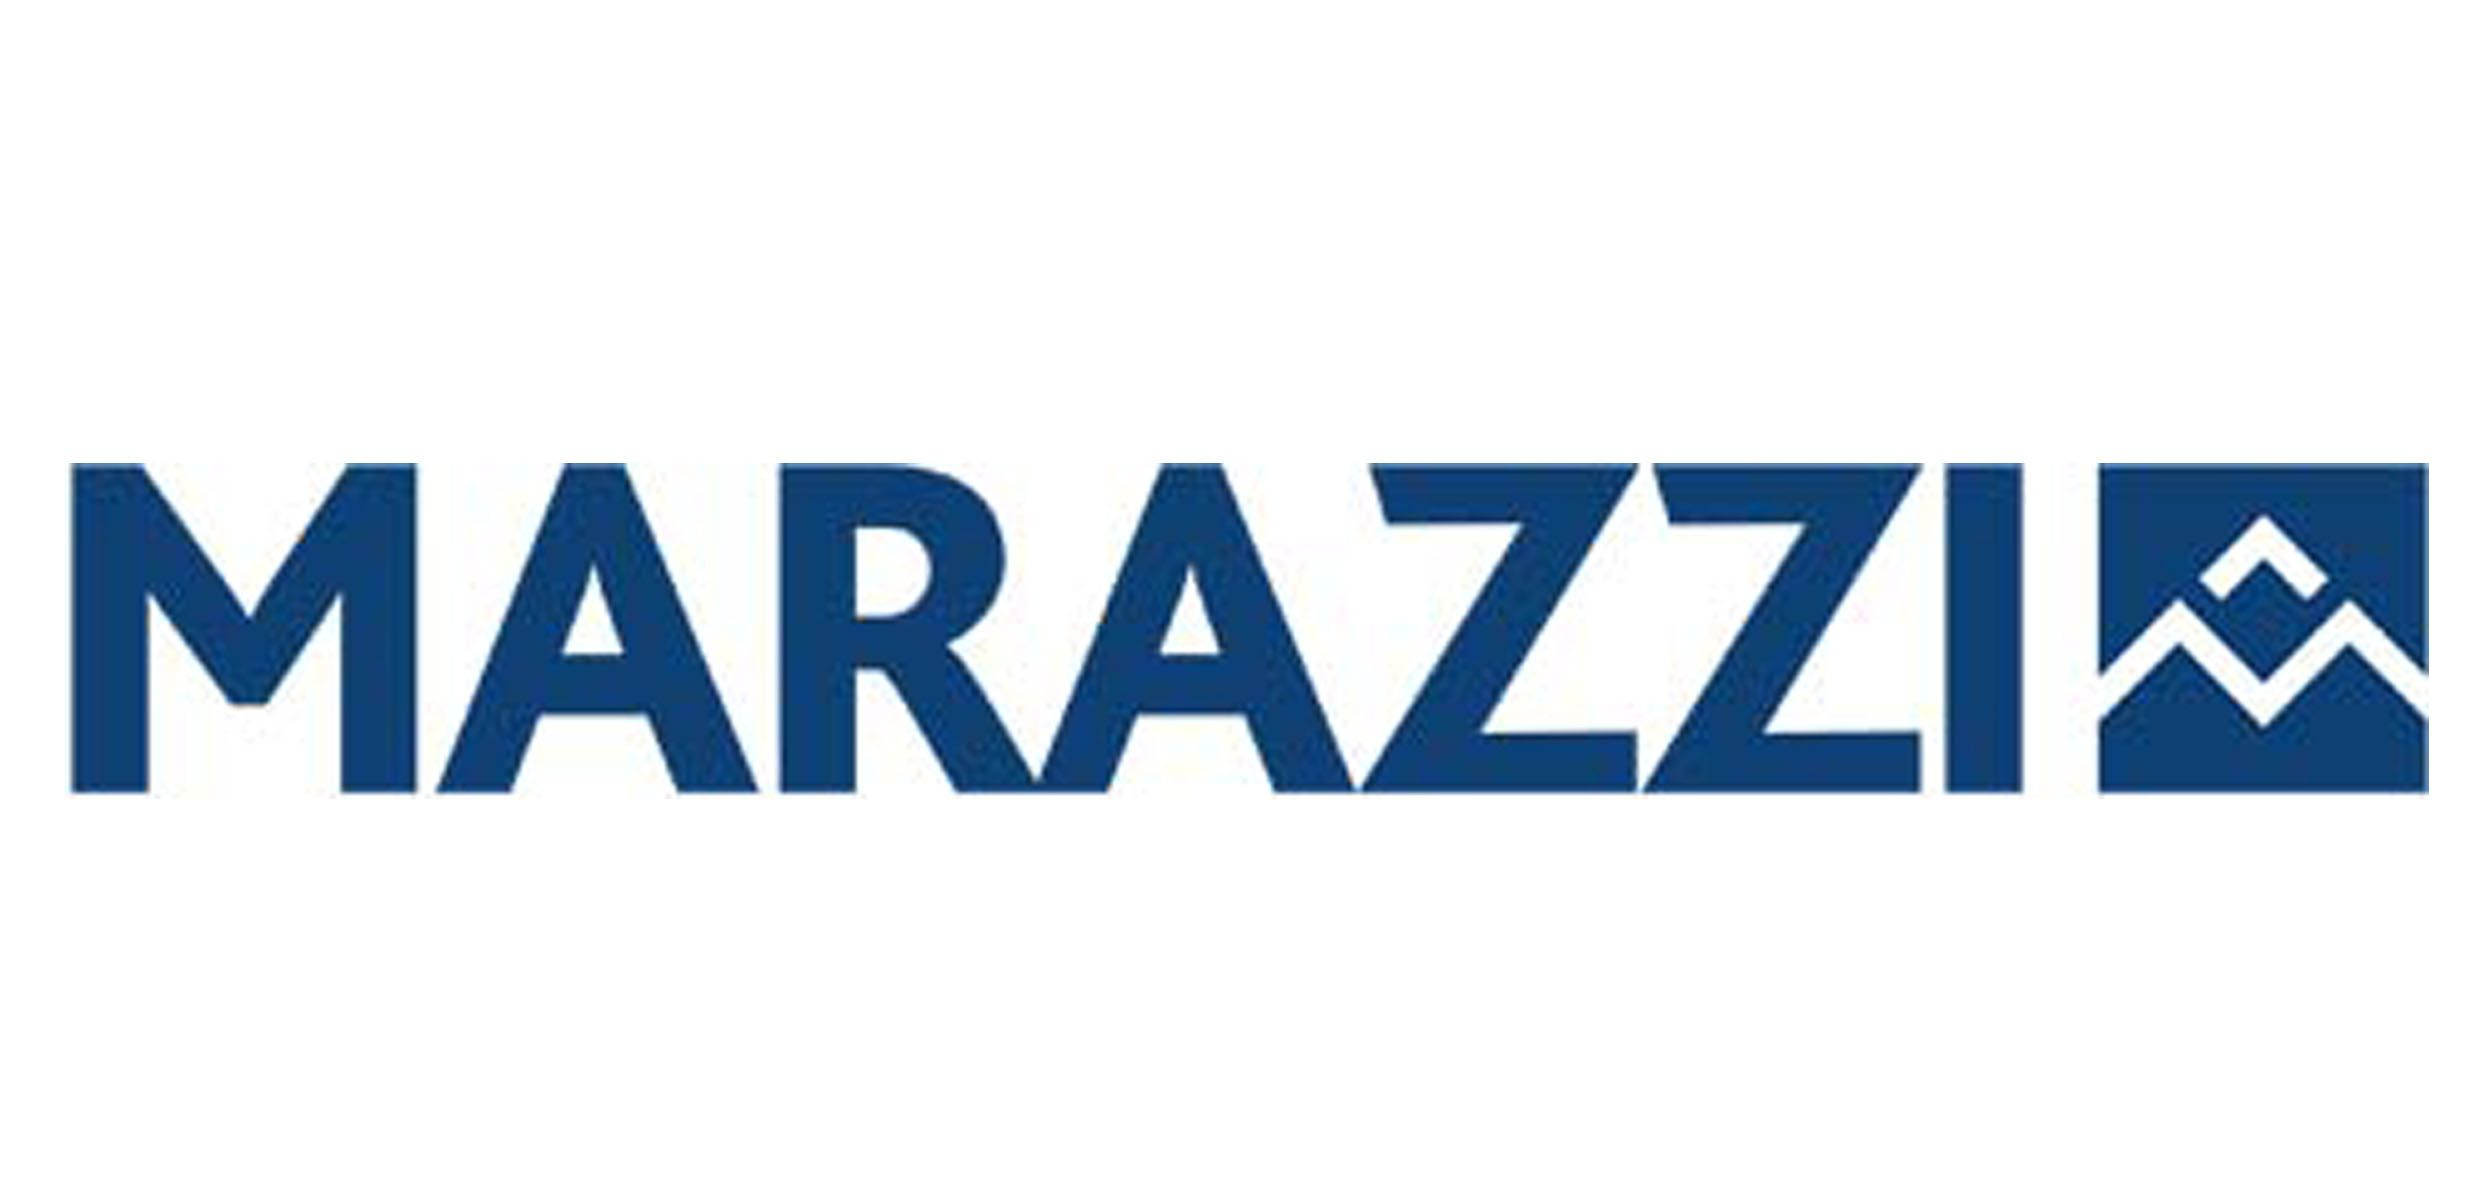 Marazzi usa plays a key role within the strong global presence of list of the top tile manufacturers marazzi dailygadgetfo Images